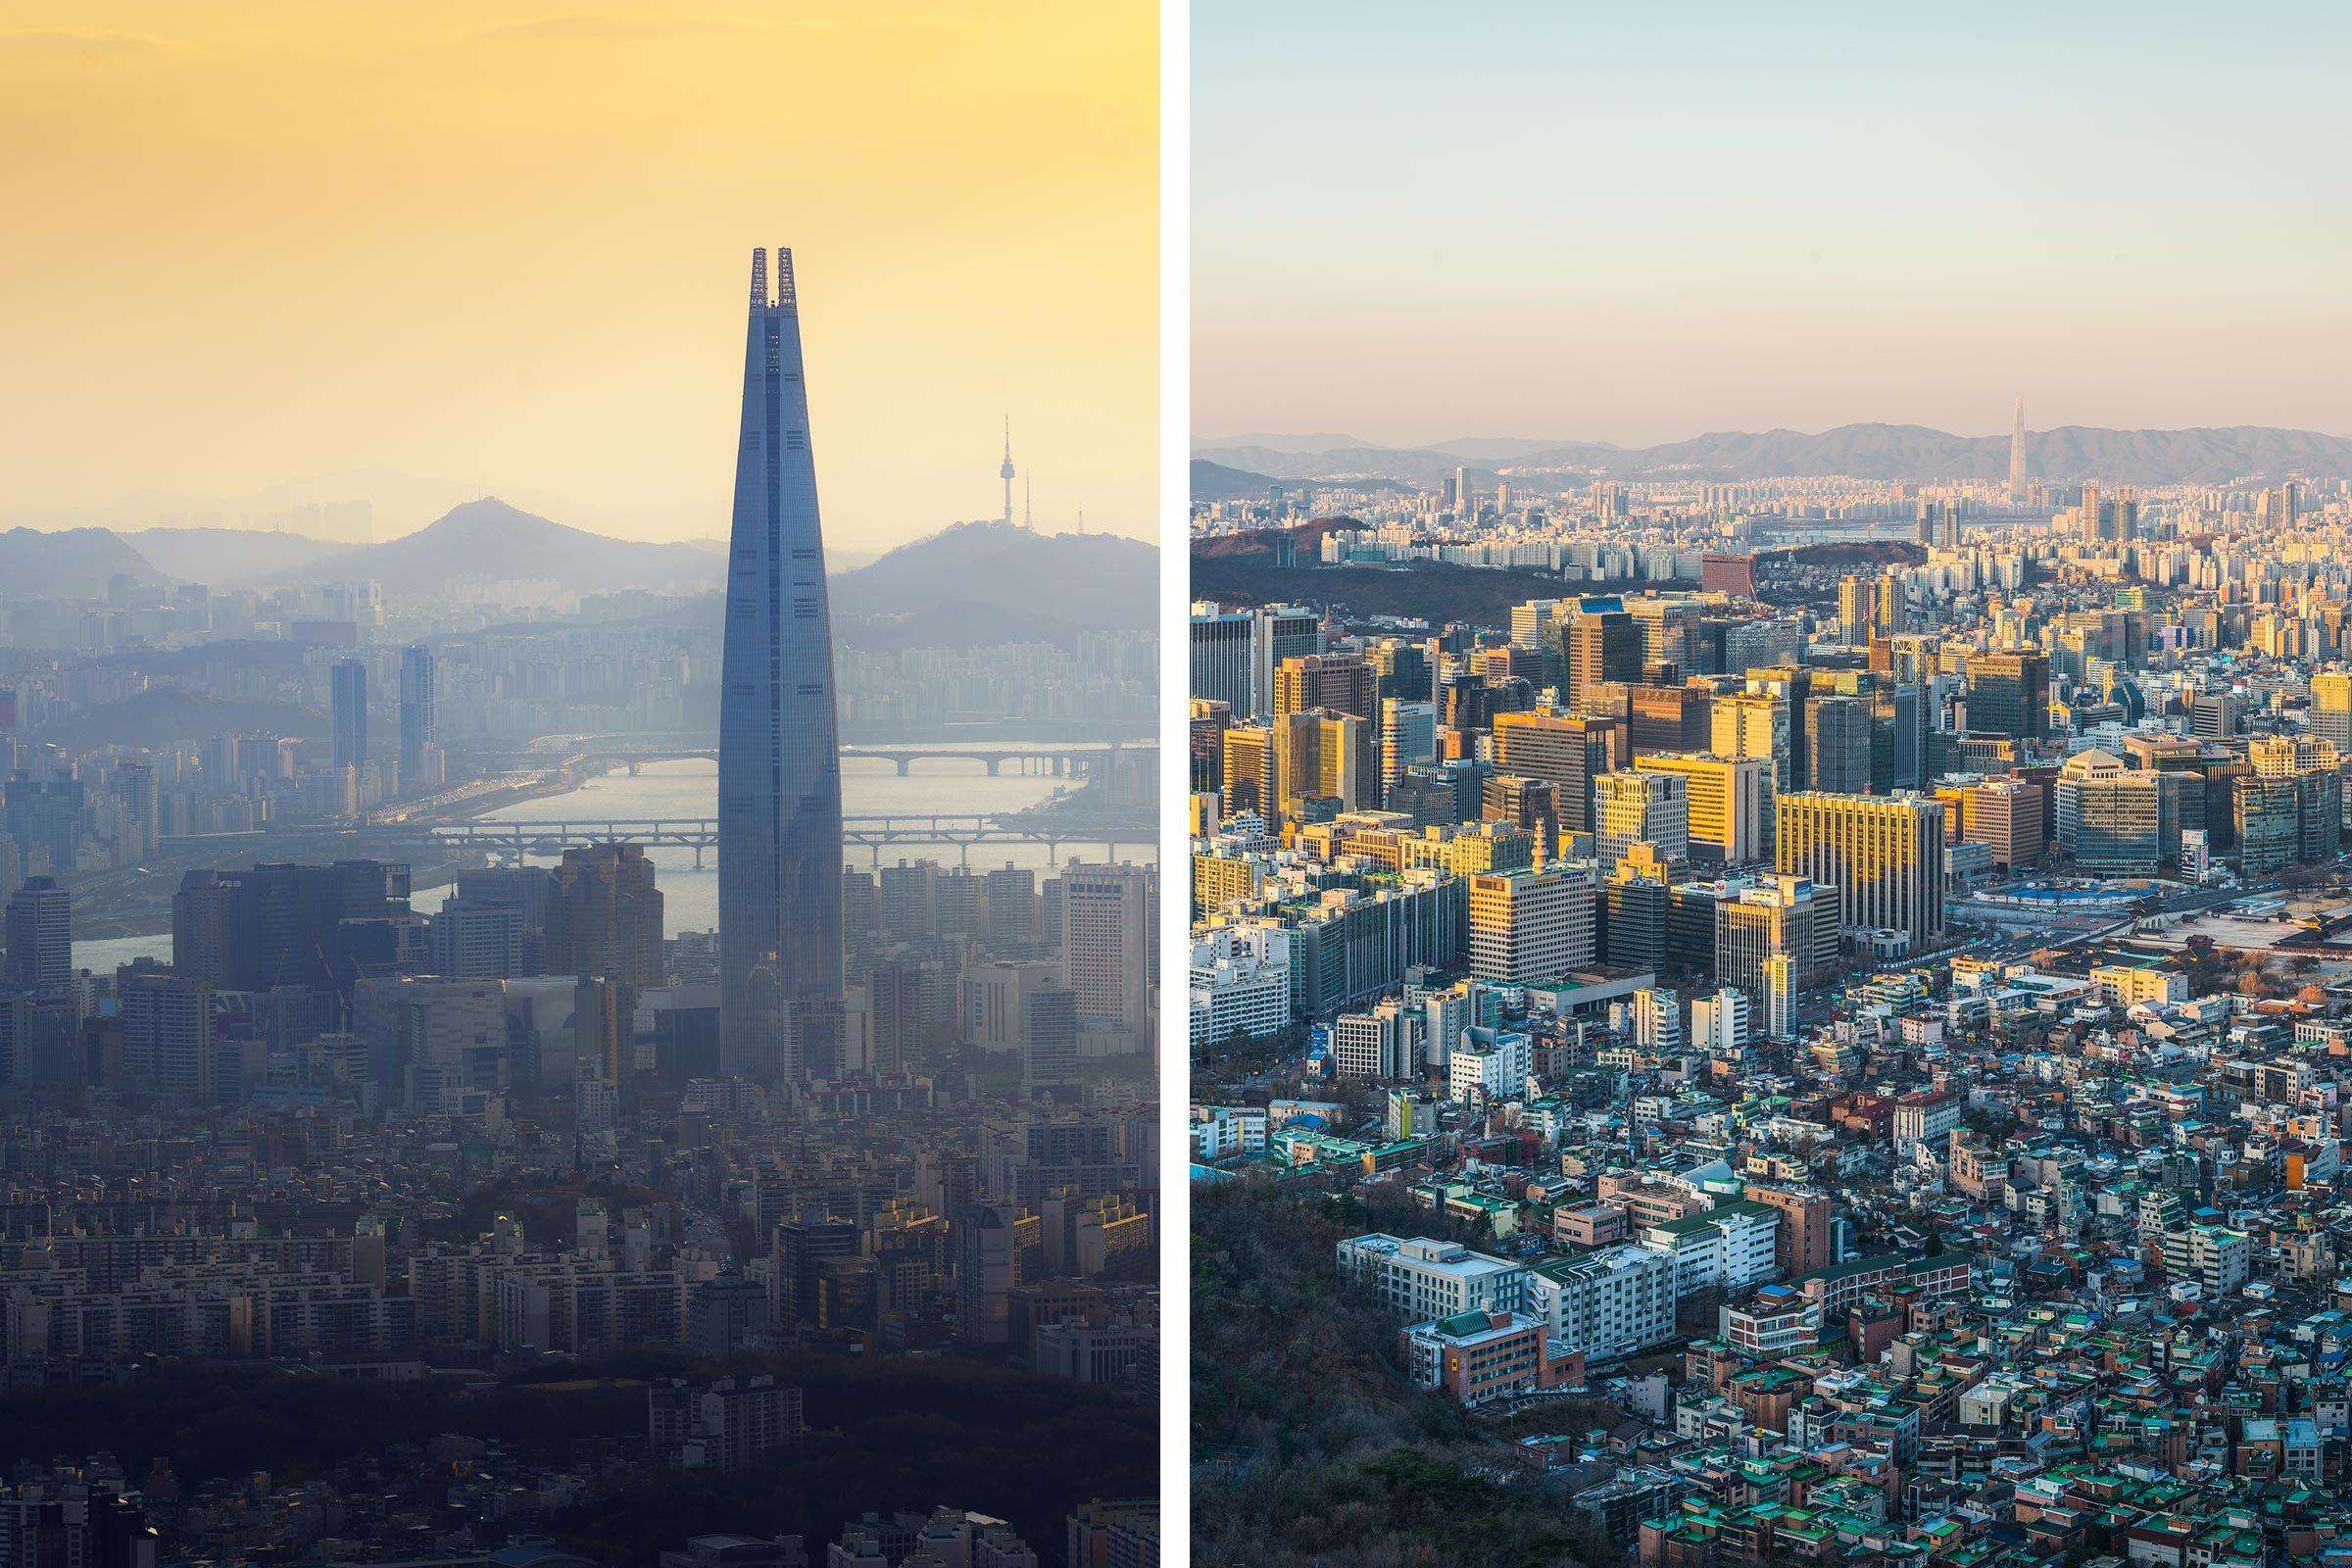 Before/After Seoul